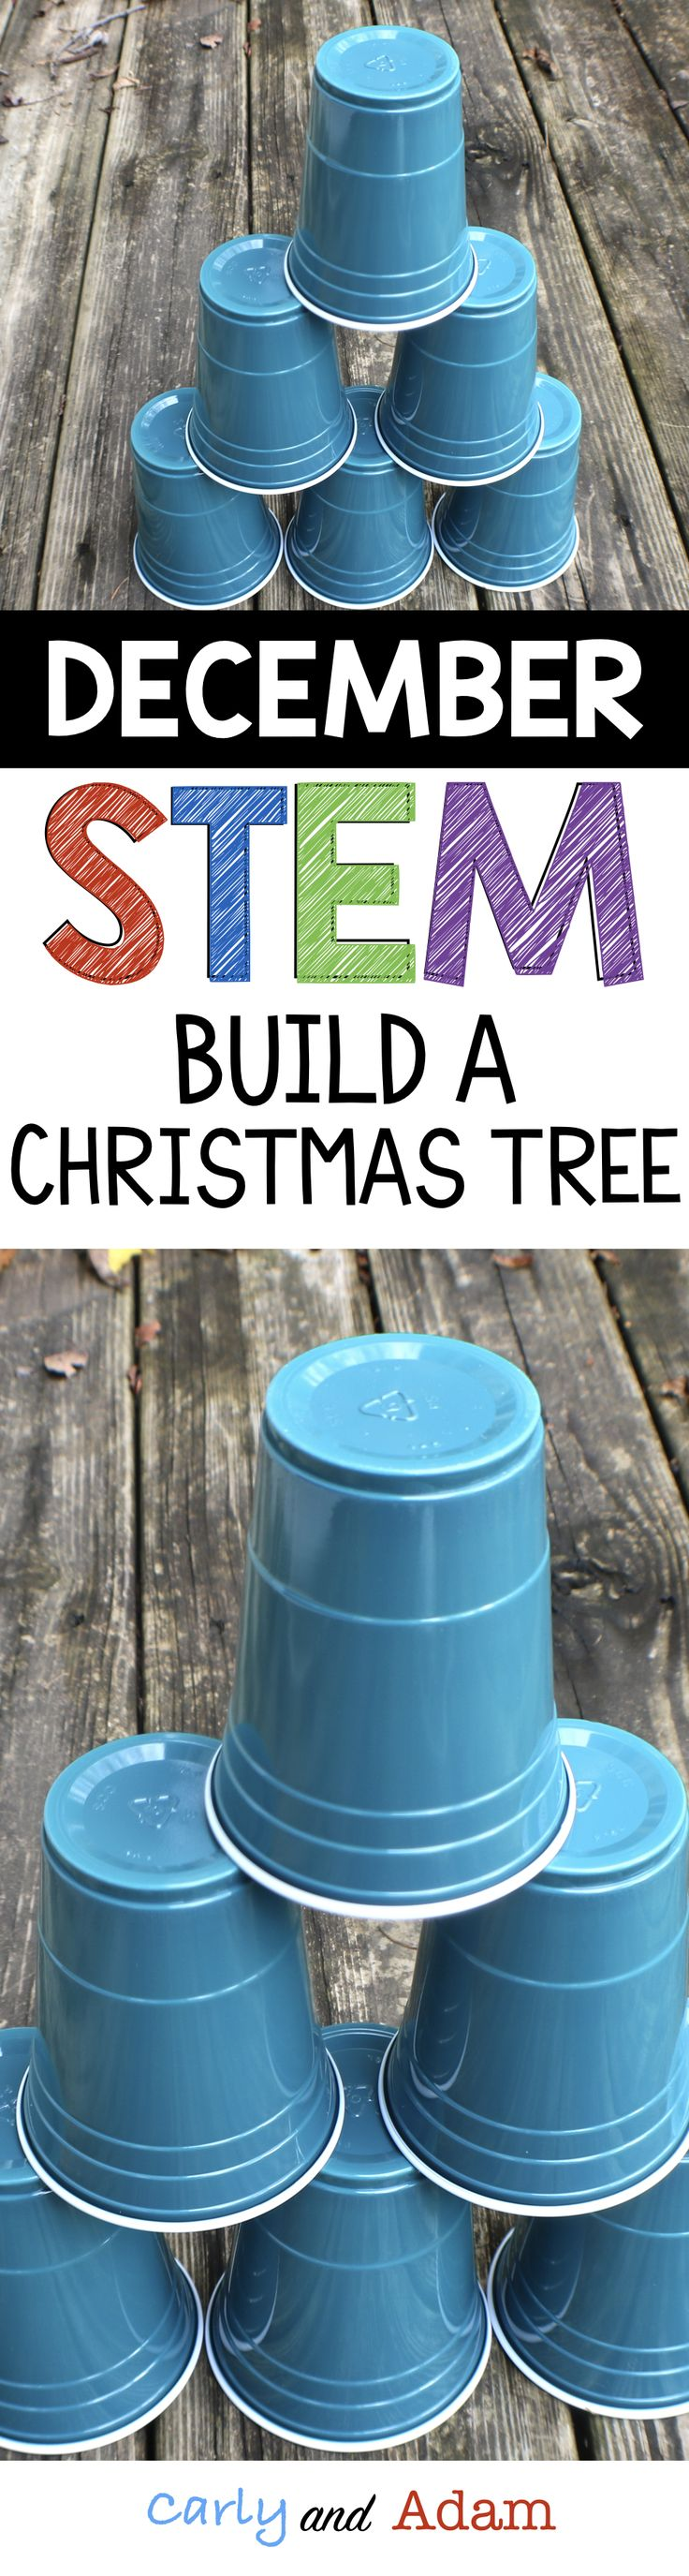 Students love completing this Christmas themed STEM challenge! The students must work together to build a Christmas tree out of cups, however they cannot touch the cups with their hands.